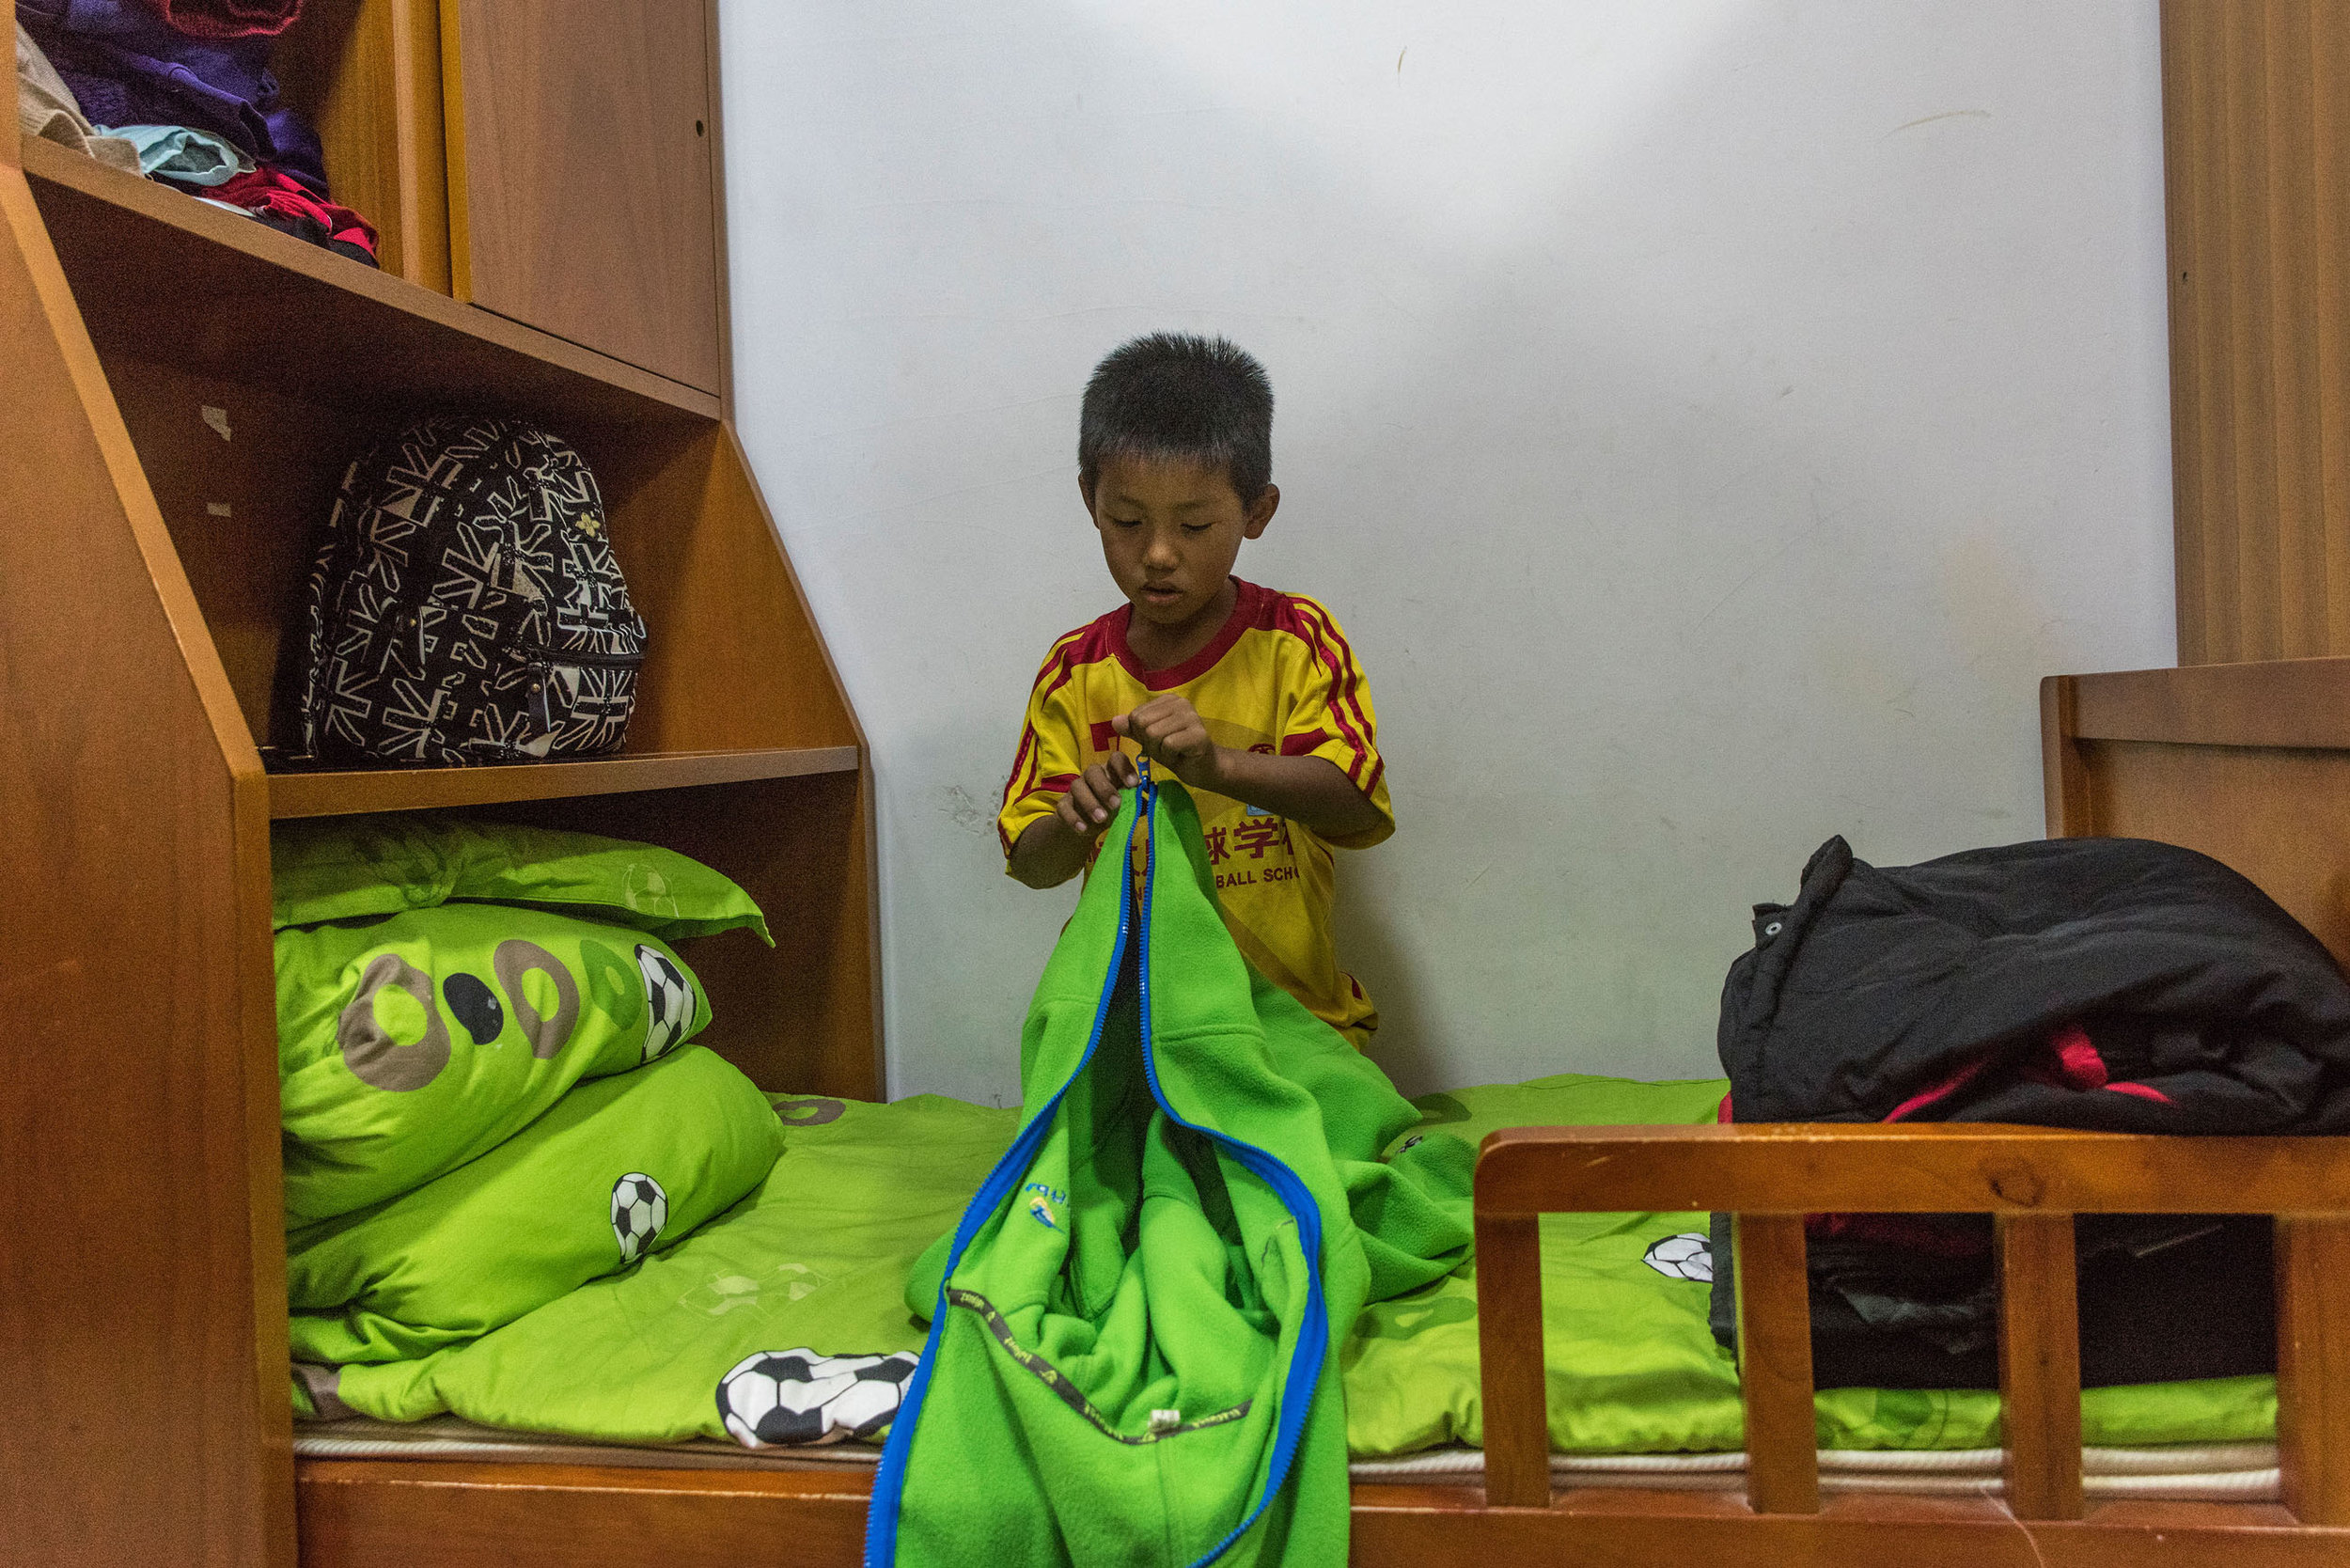 A 9 years old student preparing his bed for the night at Evergrande Football school.